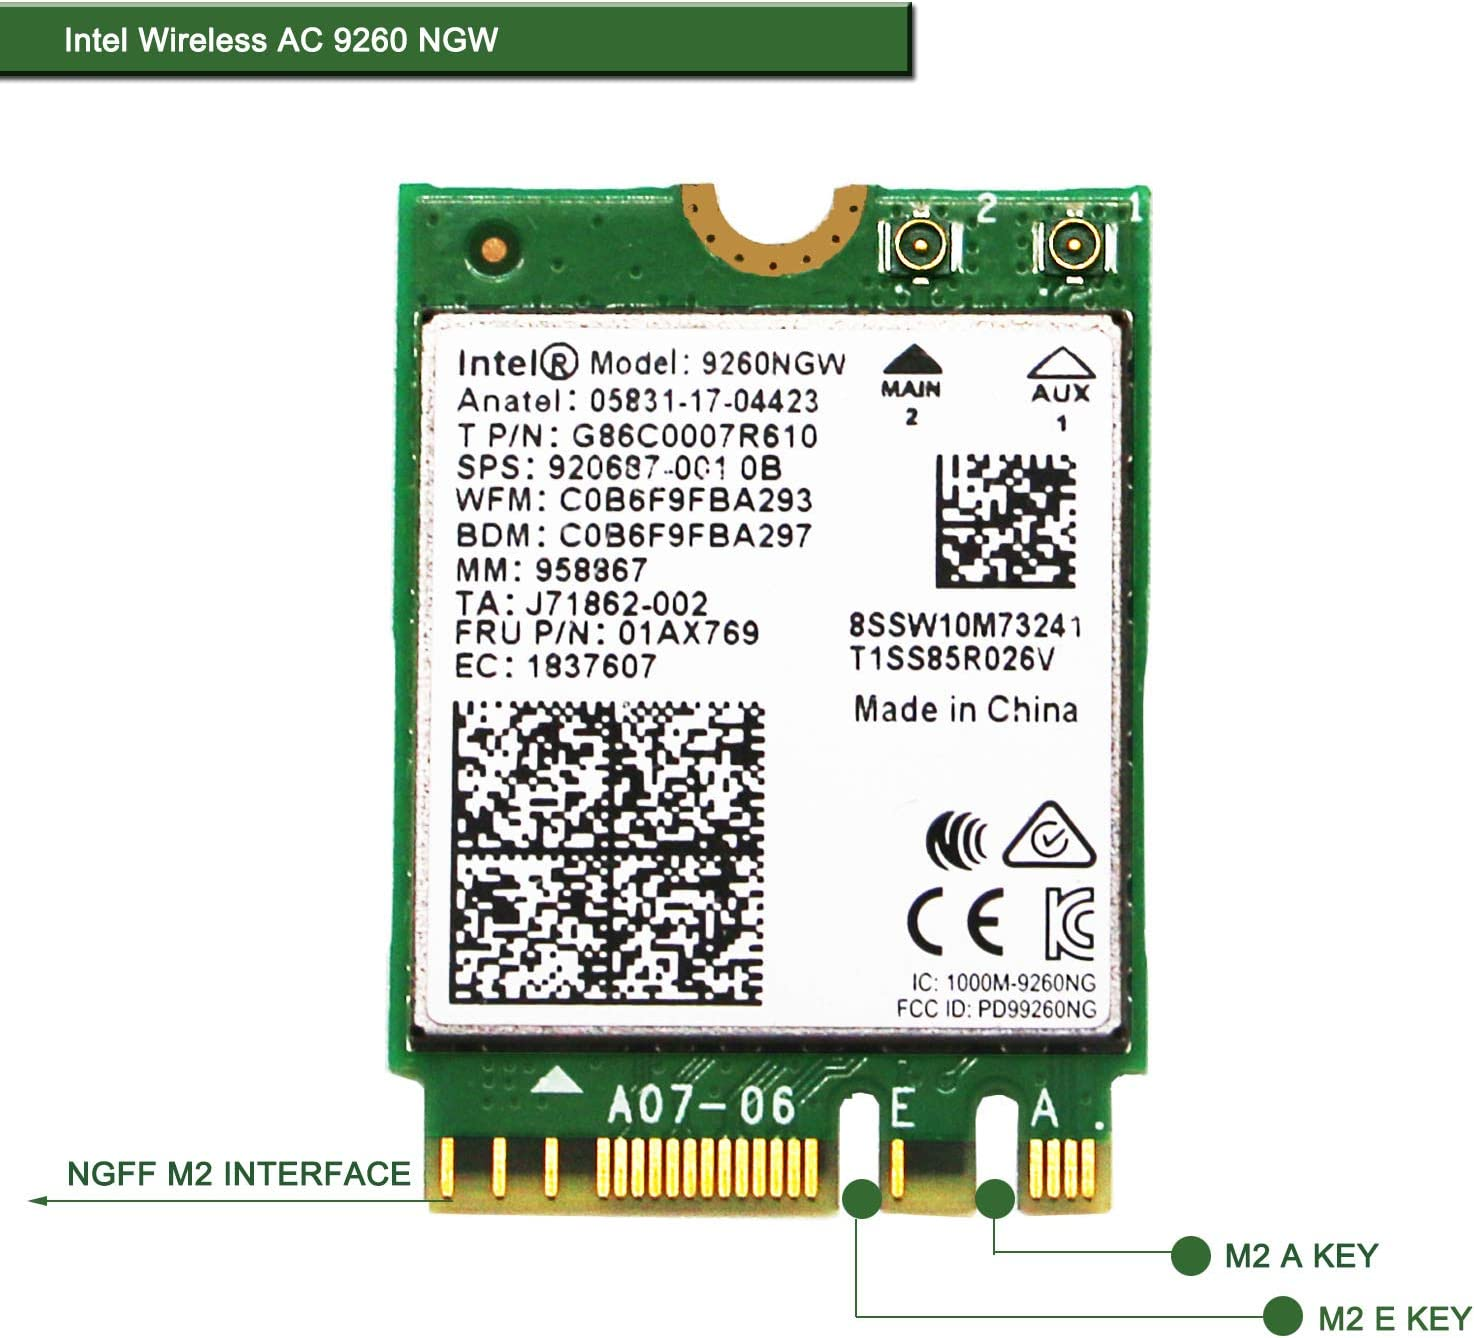 Buy Wireless Network Adapter for Laptop and Desktop PCs–NGFF M2 2230 Wi-Fi  Card-2.4GHz 300Mbps or 5GHz 1733Mbps(160MHz) Bluetooth 5.0-Dual Band  Wireless Bluetooth Adapter Intel Wireless-AC 9260 NGW Online in Vietnam.  B07FMKHKQY